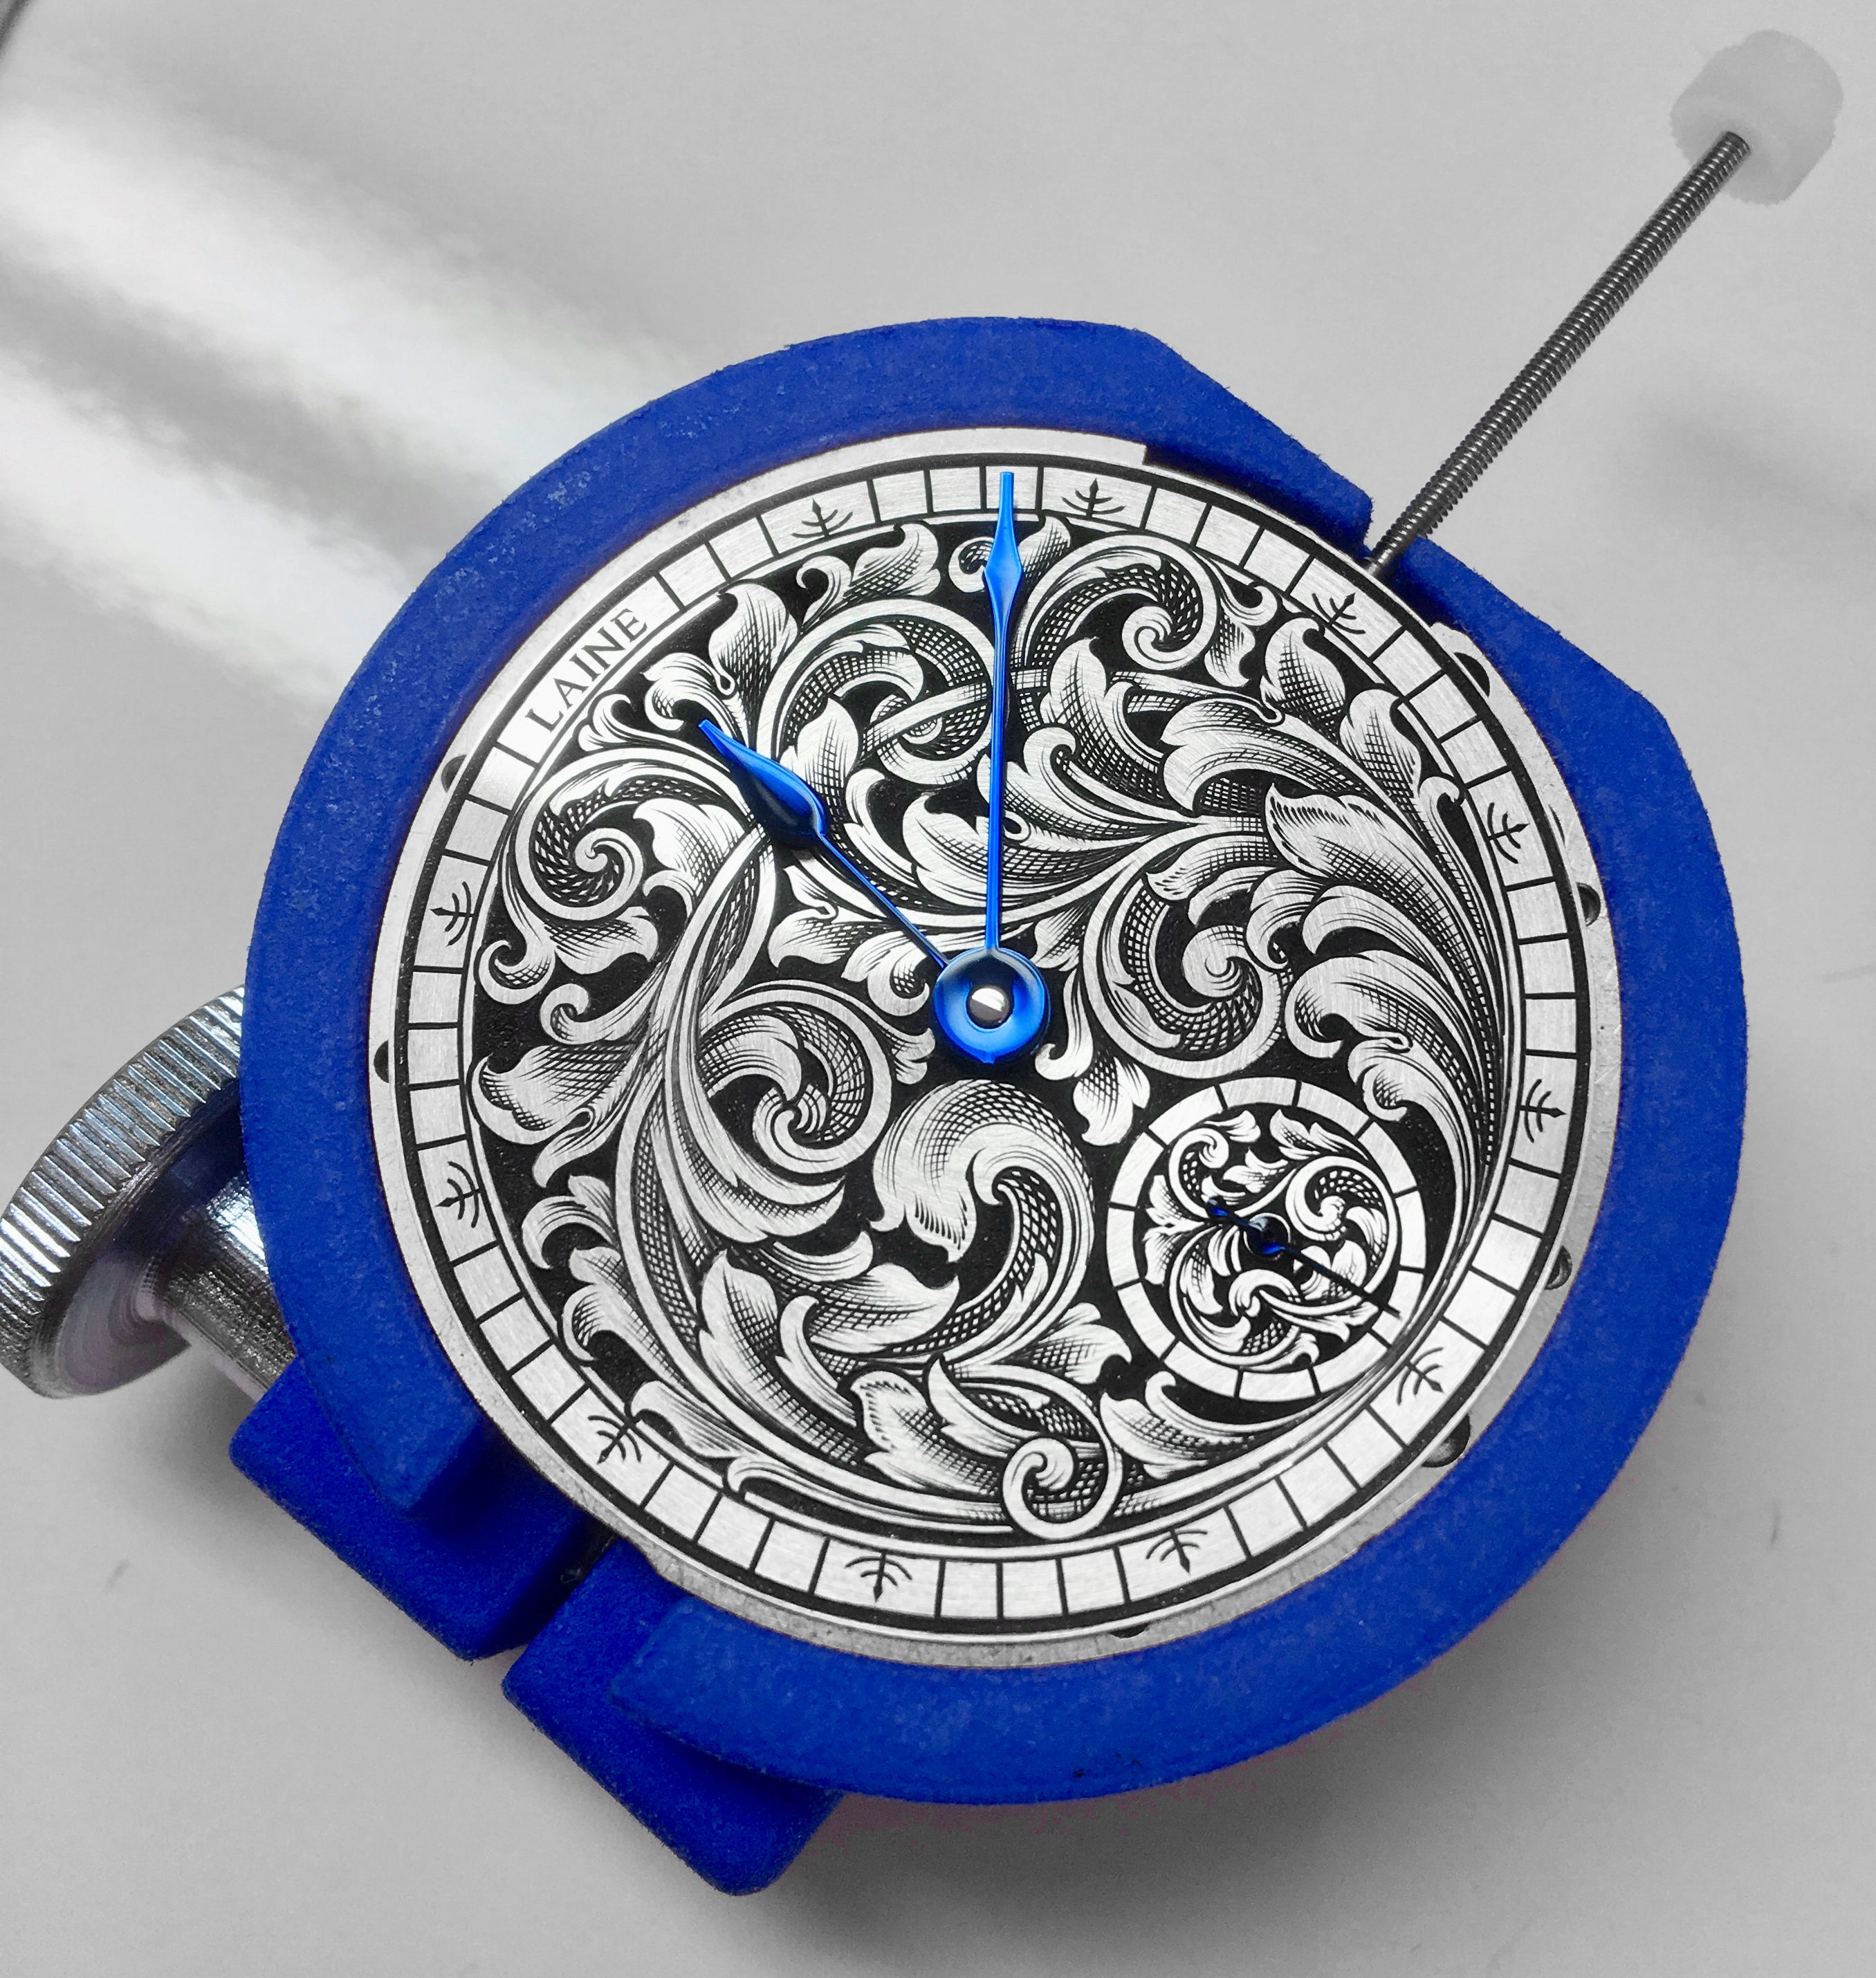 engraved dial without case